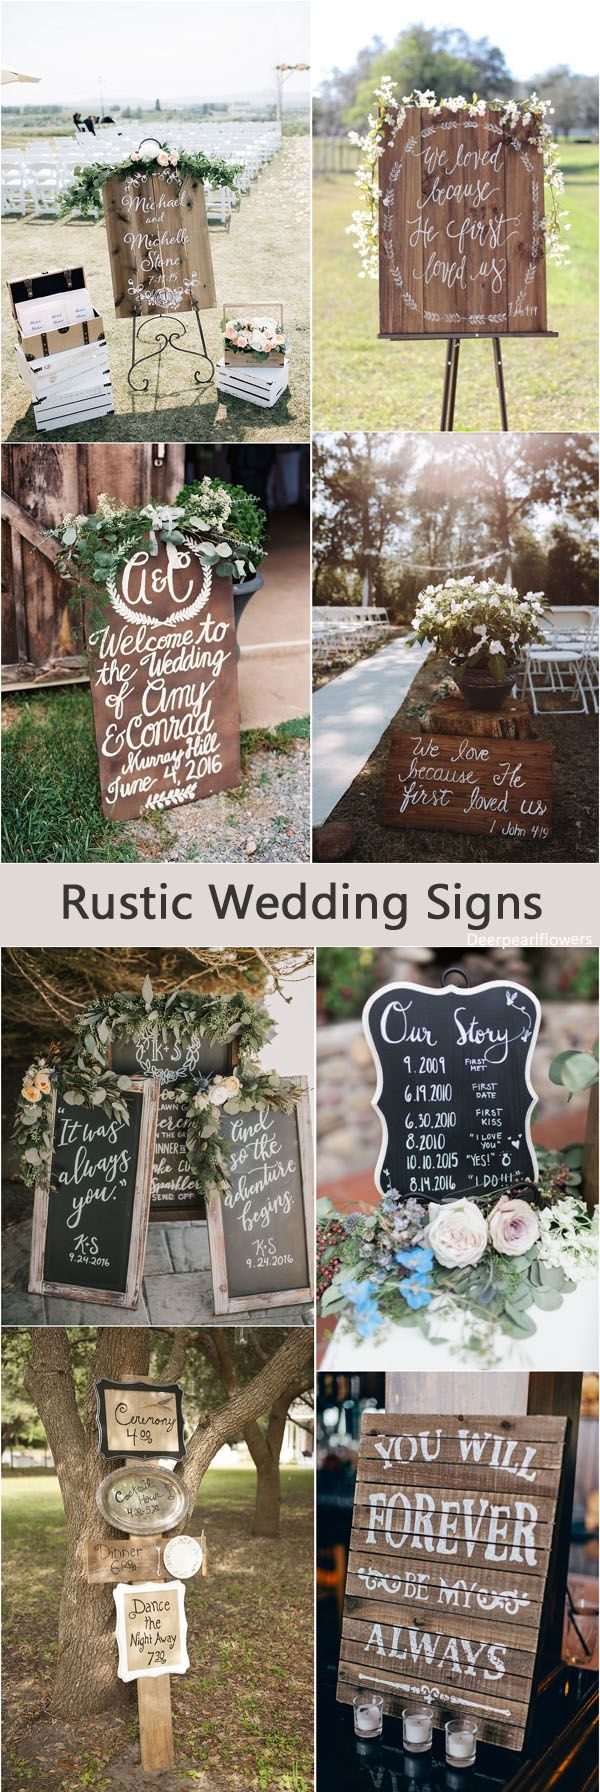 ideas for country wedding invitations%0A Rustic country wedding signs  u     ideas   http   www deerpearlflowers com